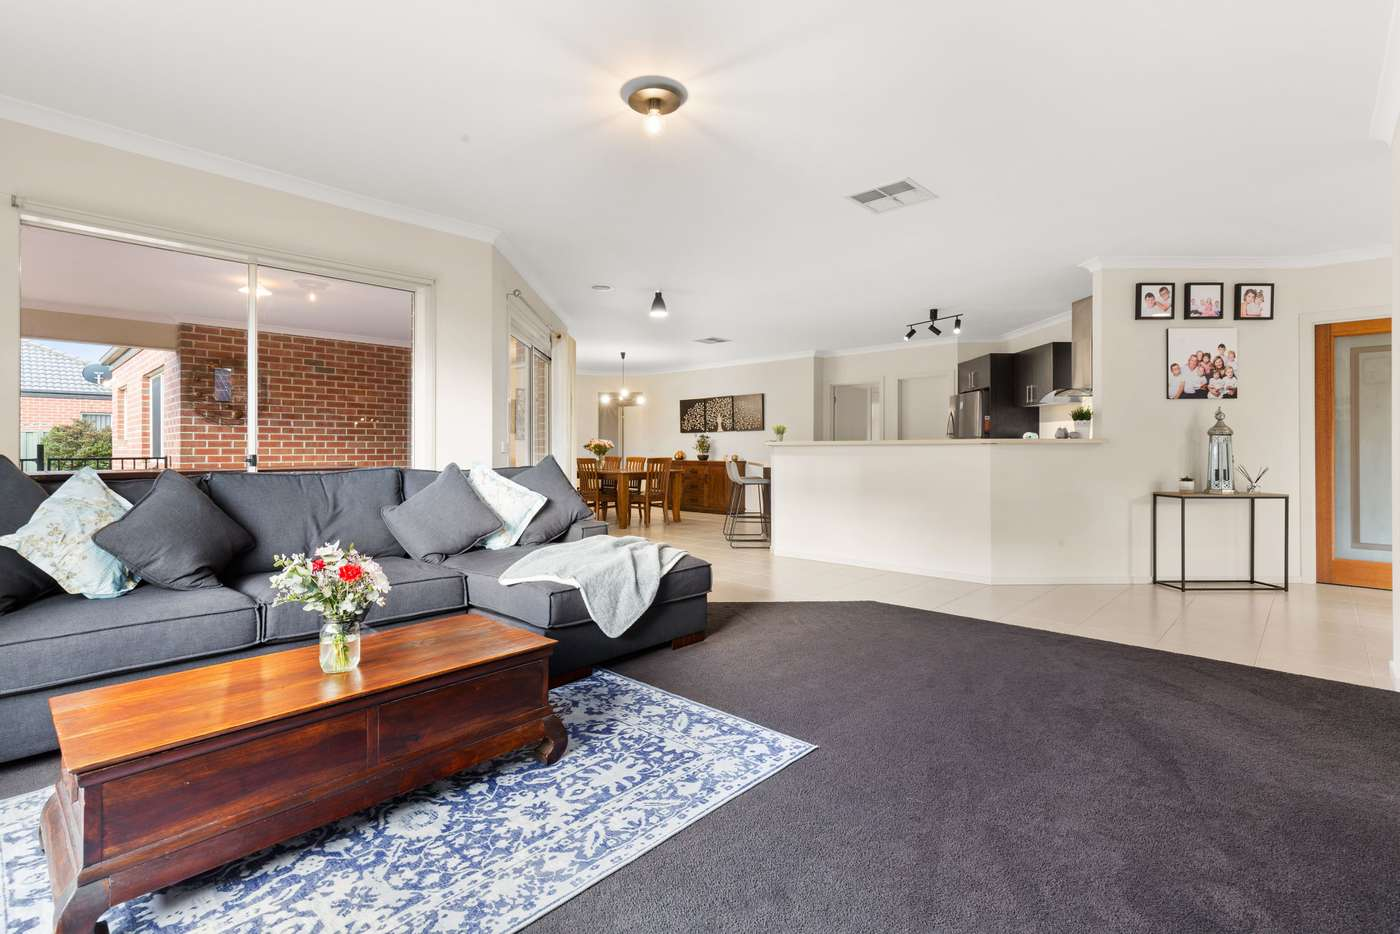 Fifth view of Homely house listing, 8 Charolais Court, Pakenham VIC 3810